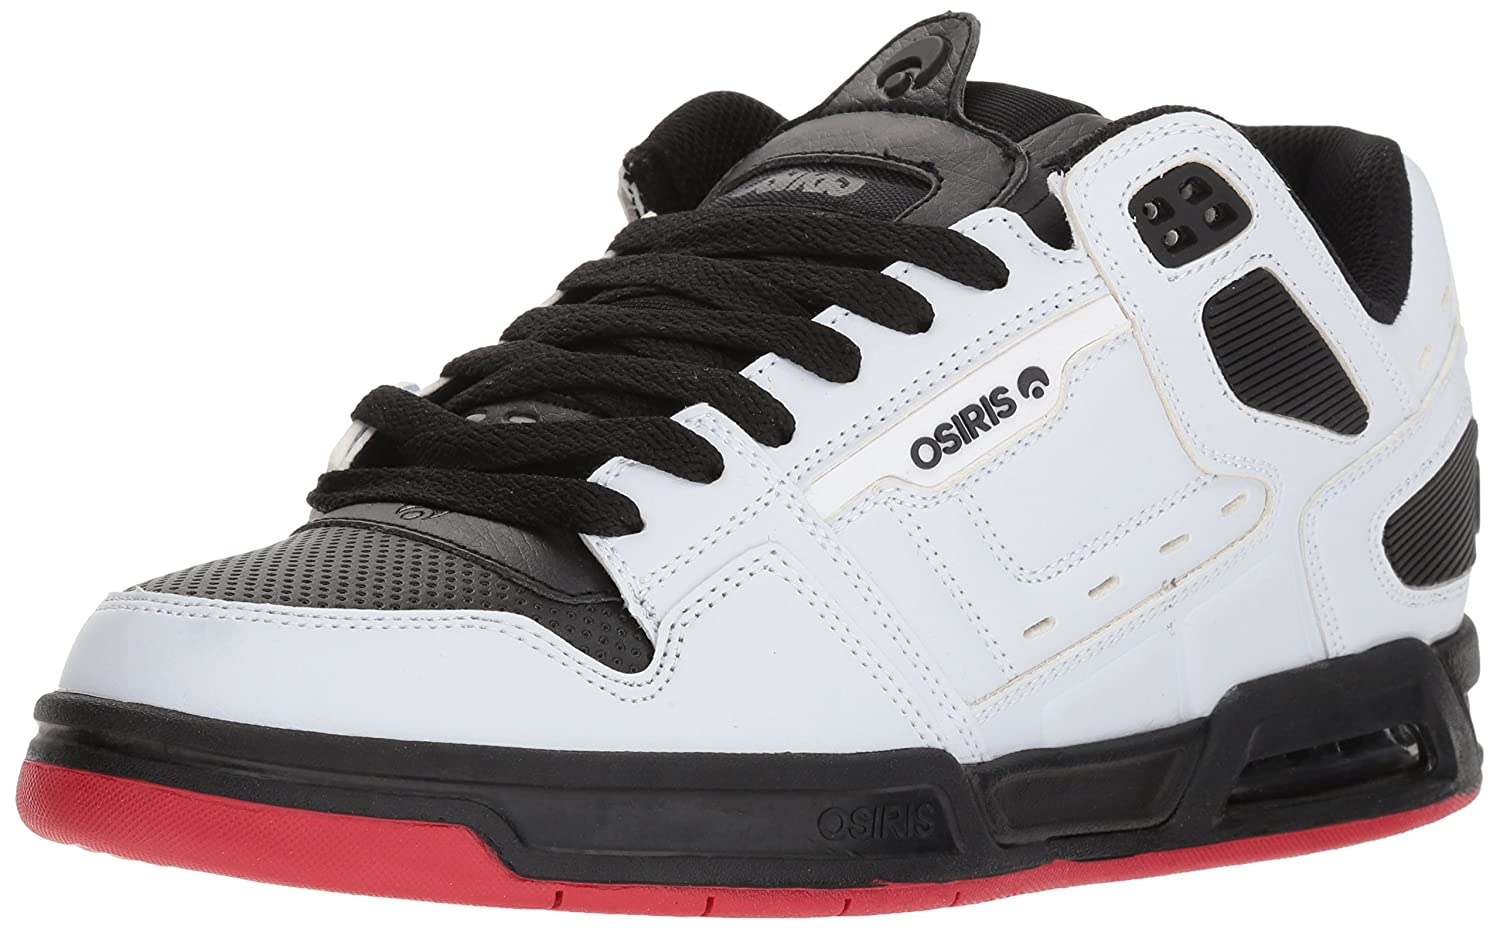 Osiris Men's Peril Skate Shoe 7.5 D(M) US|White/Black/Red